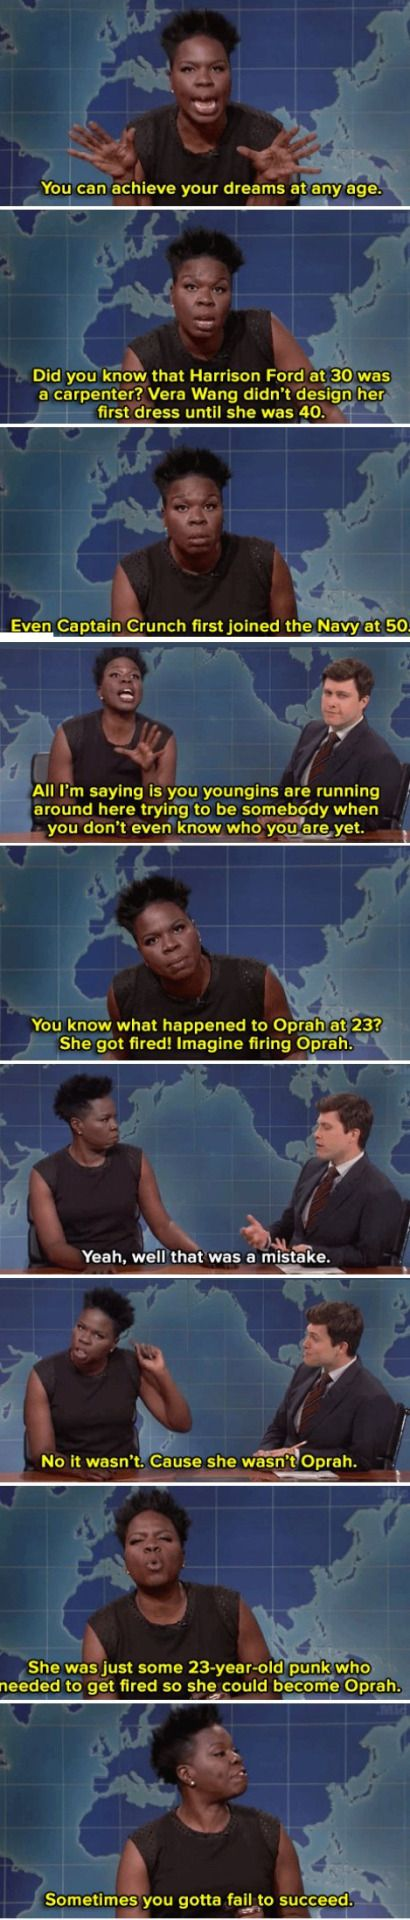 The brilliant Leslie Jones on SNL